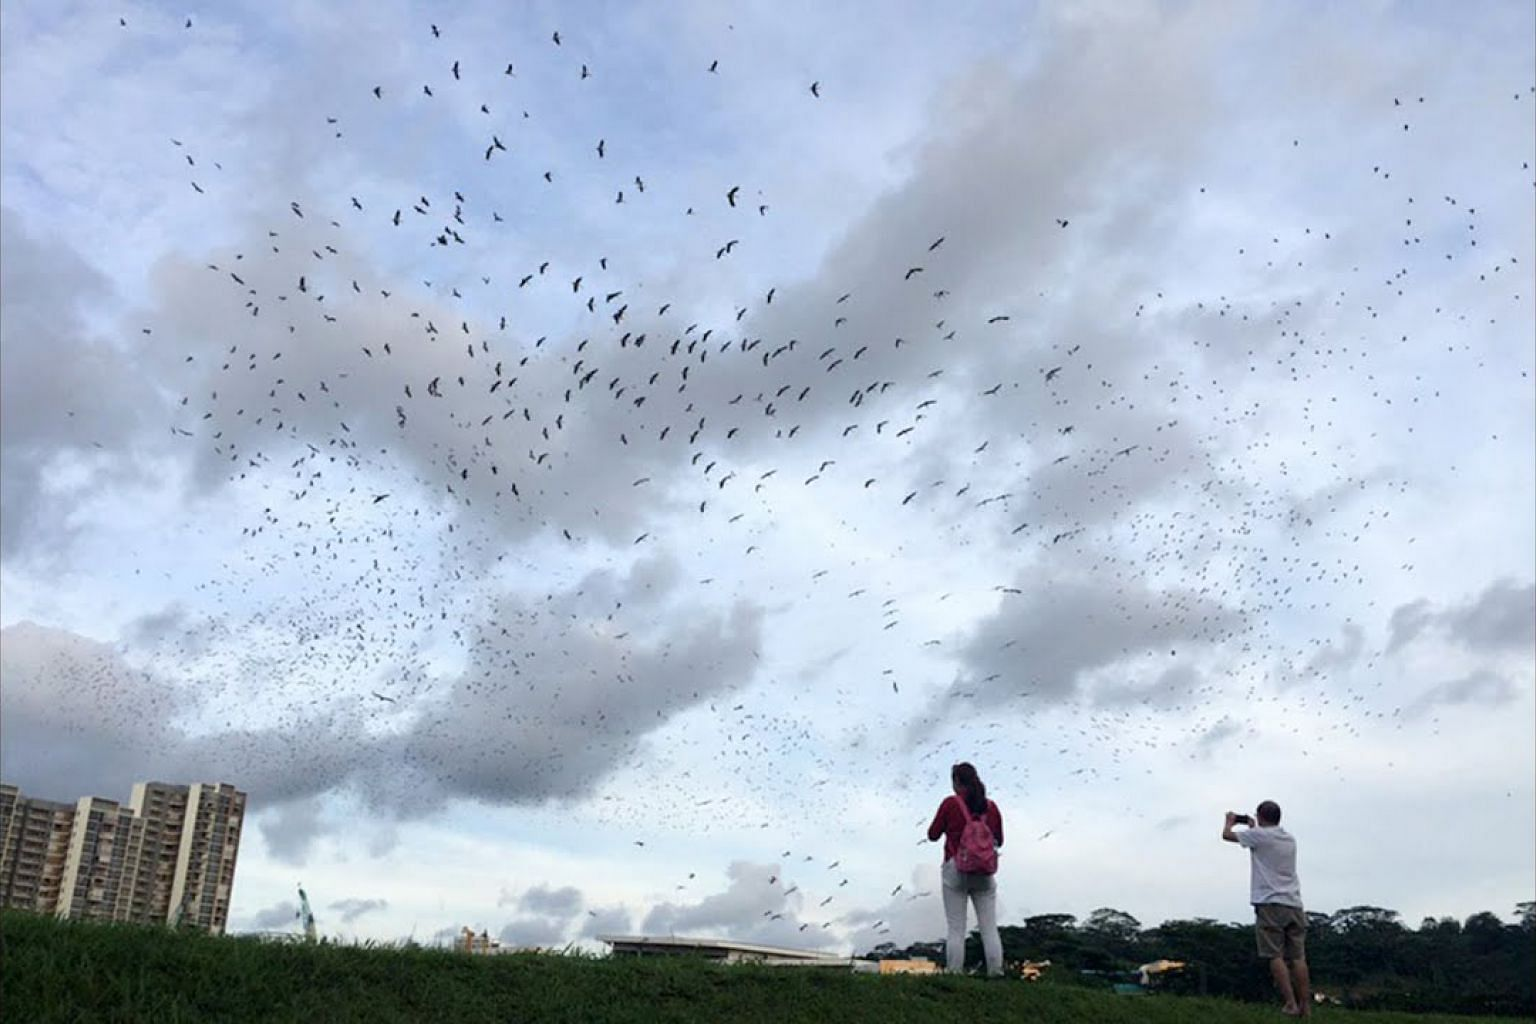 Asian openbill storks spotted across Singapore